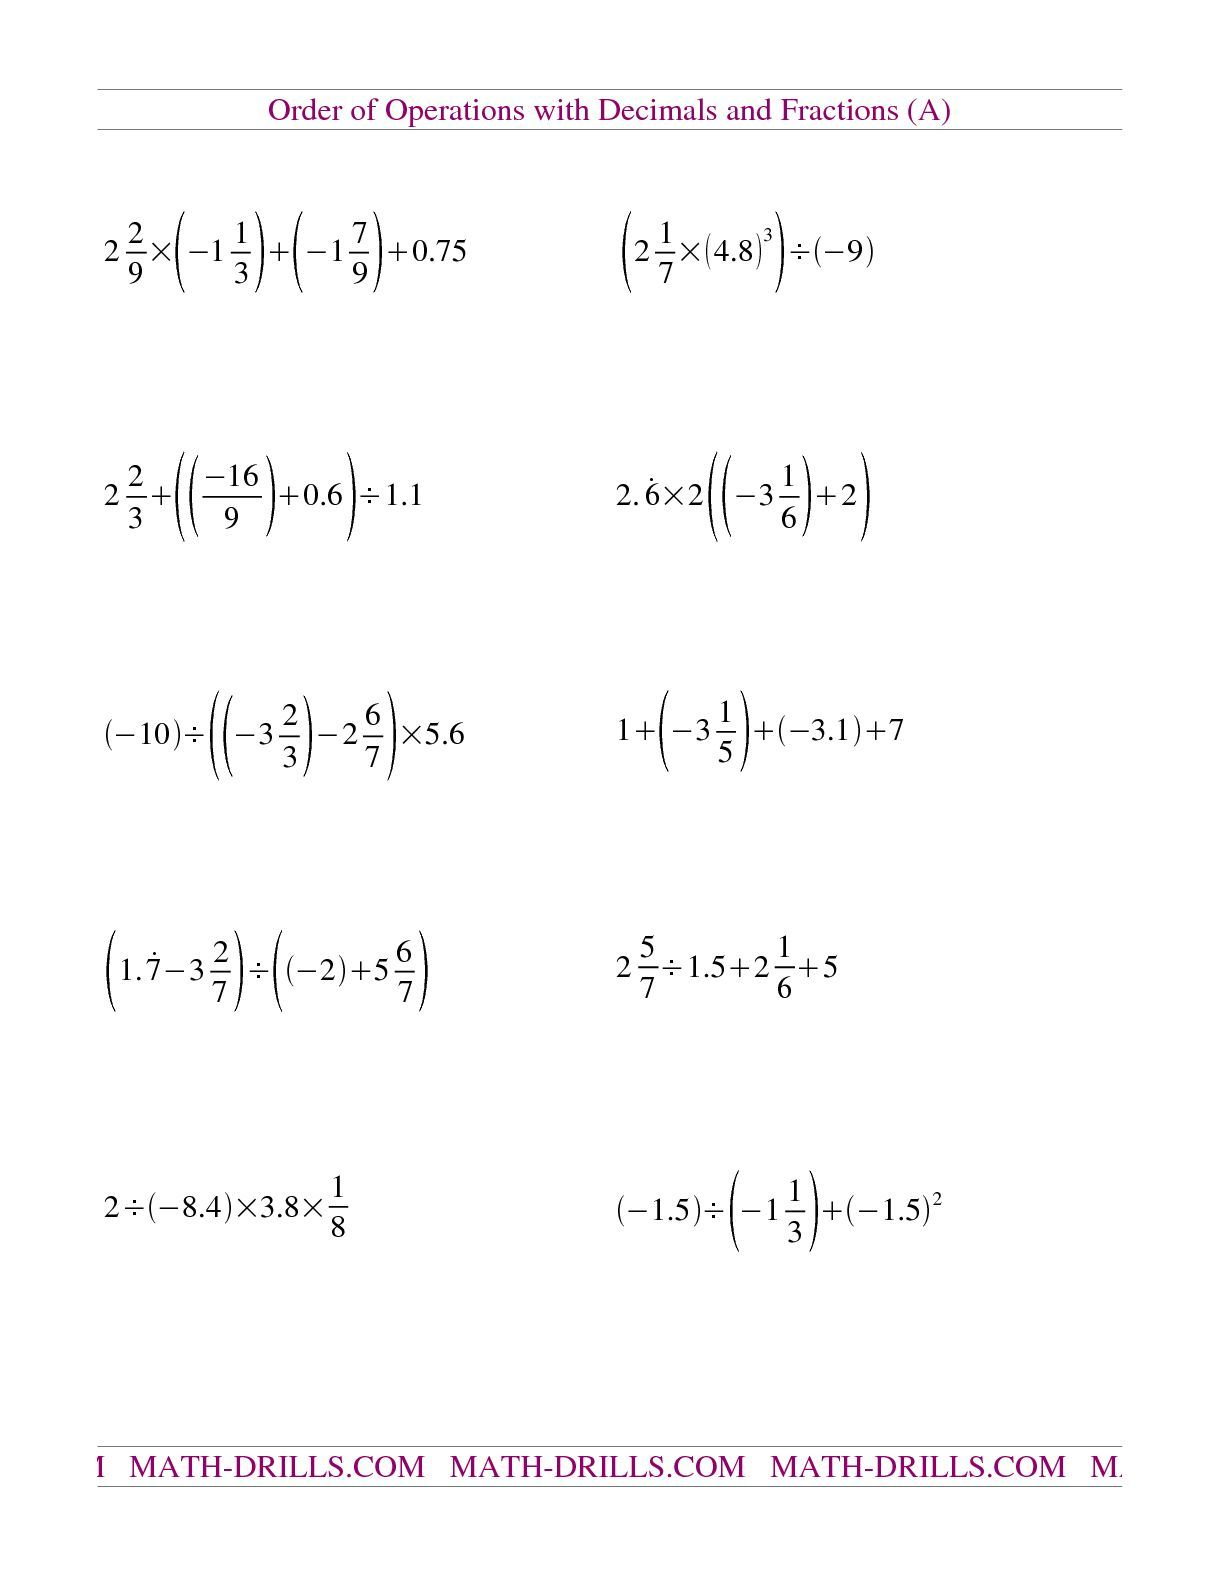 Worksheets Free Order Of Operations Worksheets the decimals and fractions mixed with negatives a math worksheet from order of operations page at drills co